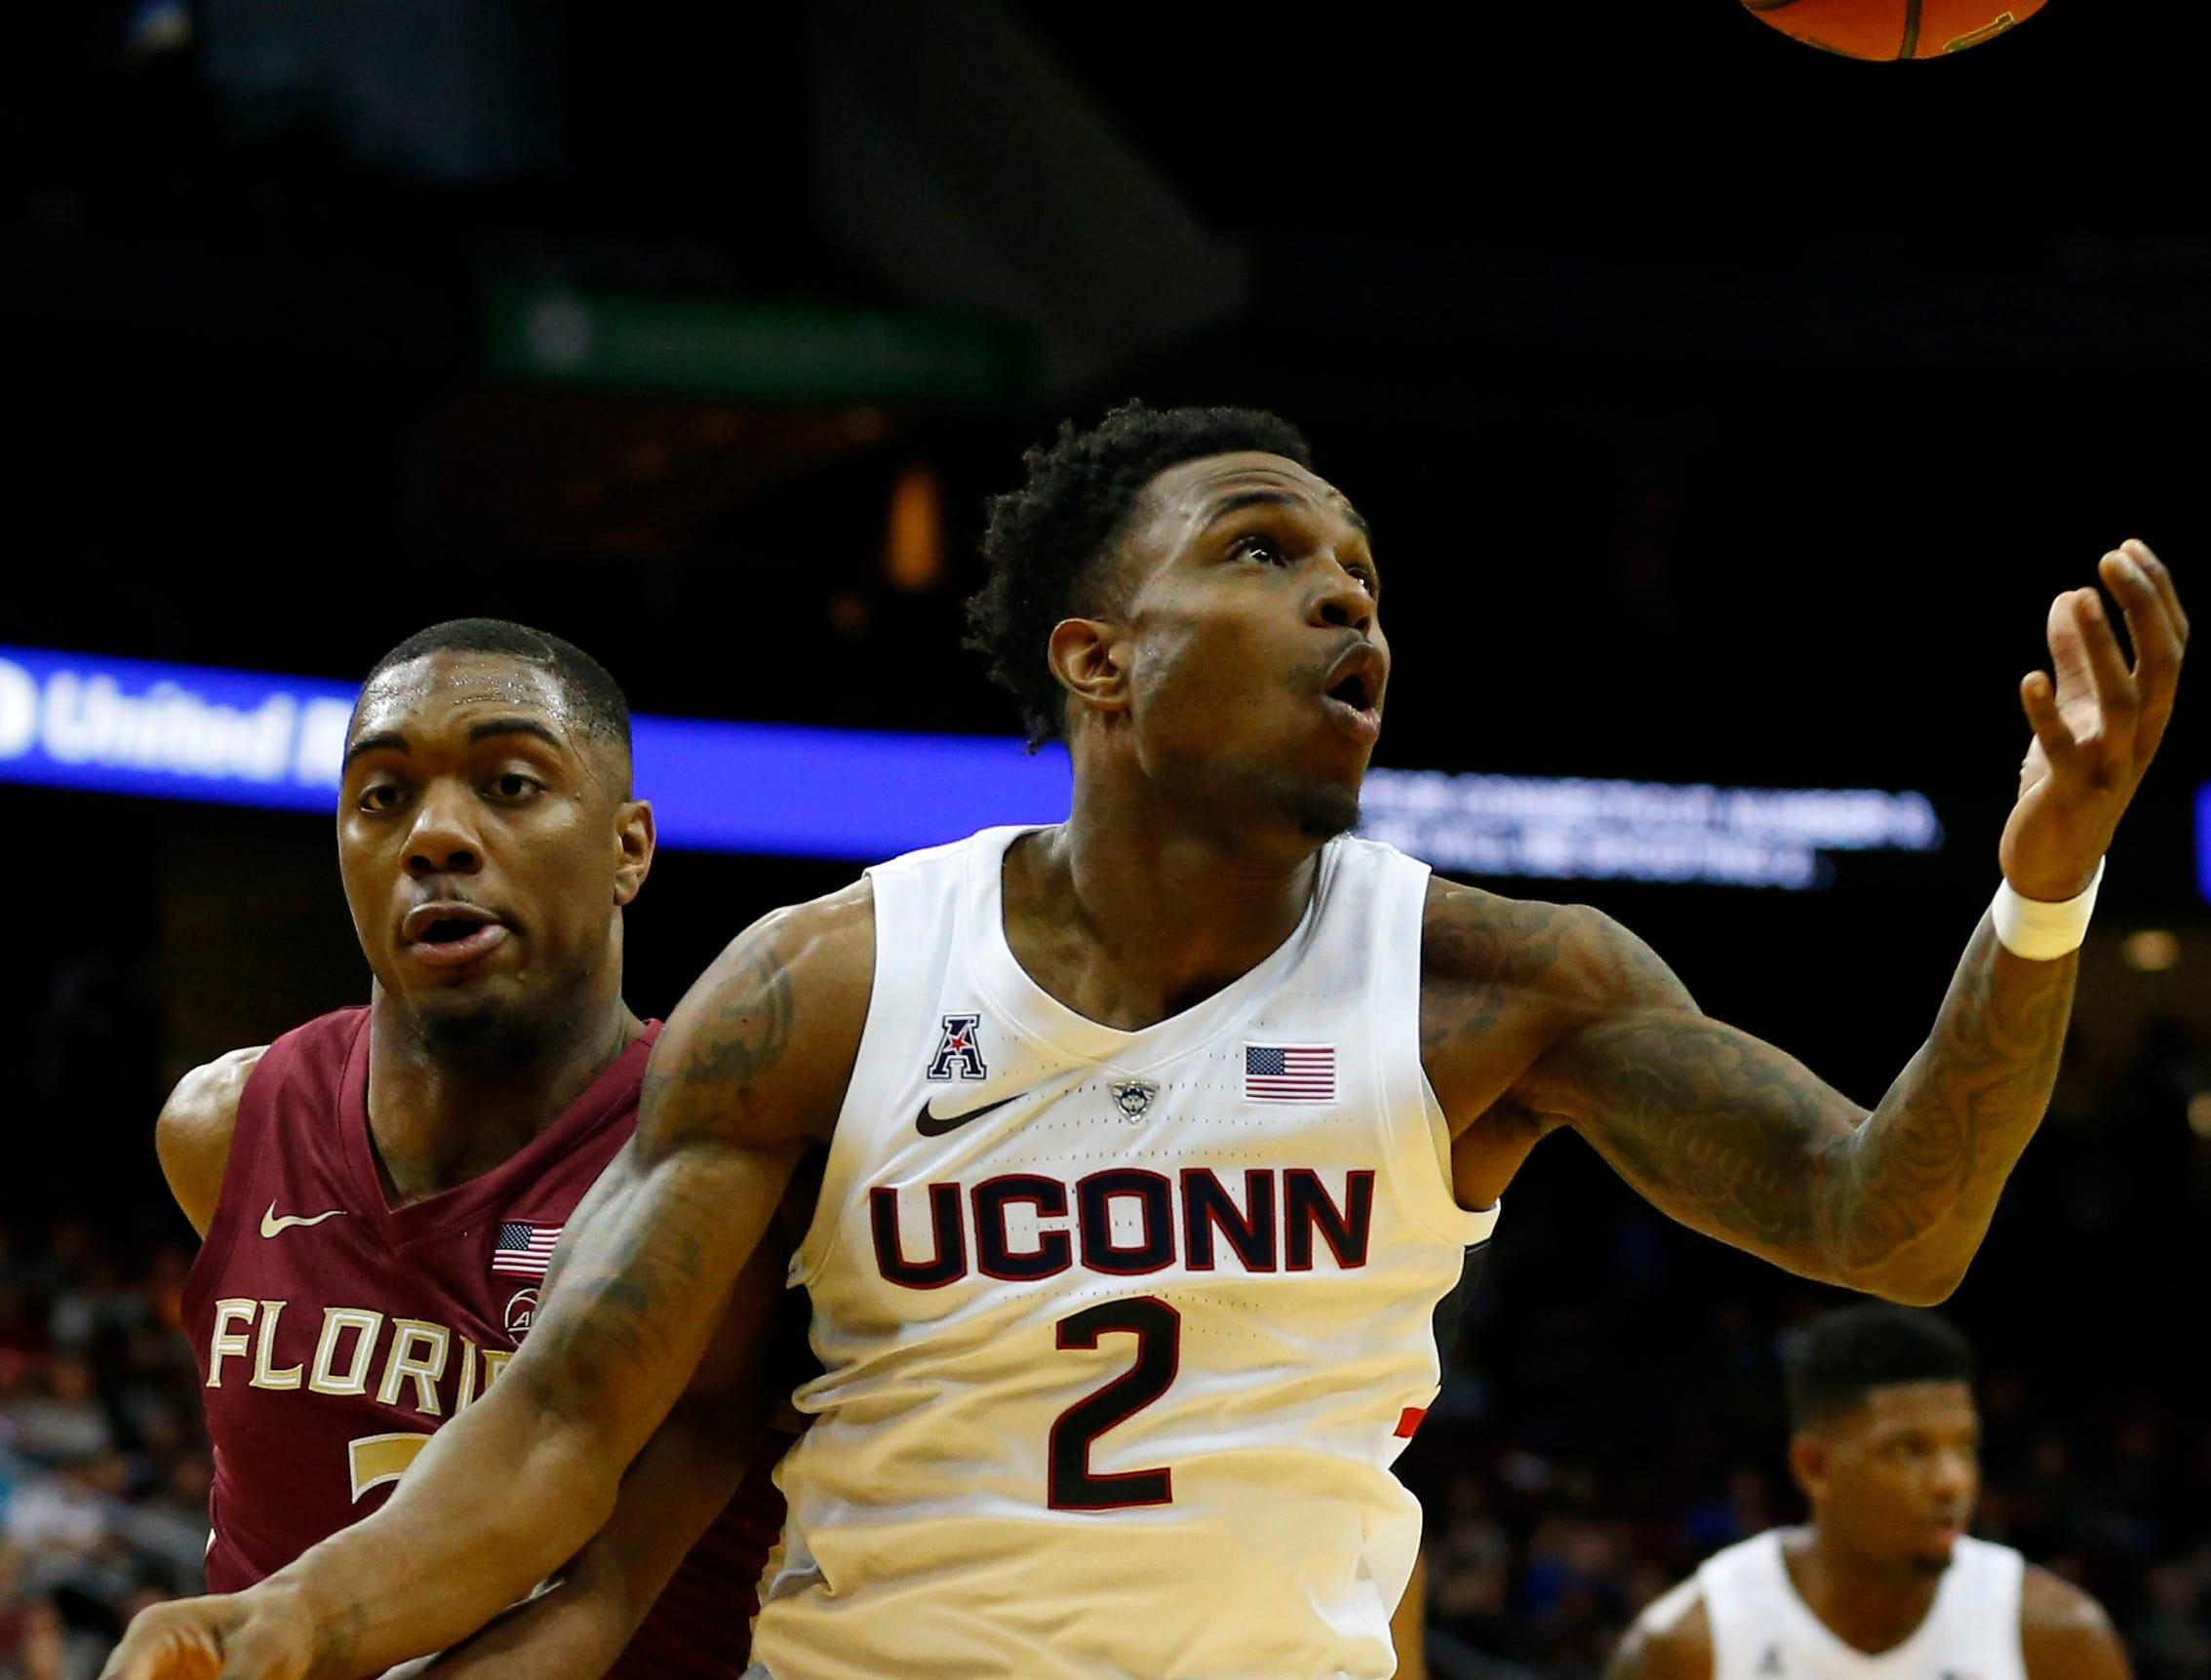 Dec 8, 2018; Newark, NJ, USA; Florida State Seminoles guard Trent Forrest (3) and Connecticut Huskies guard Tarin Smith (2) battle for a rebound during the second half at Prudential Center. Mandatory Credit: Noah K. Murray-USA TODAY Sports